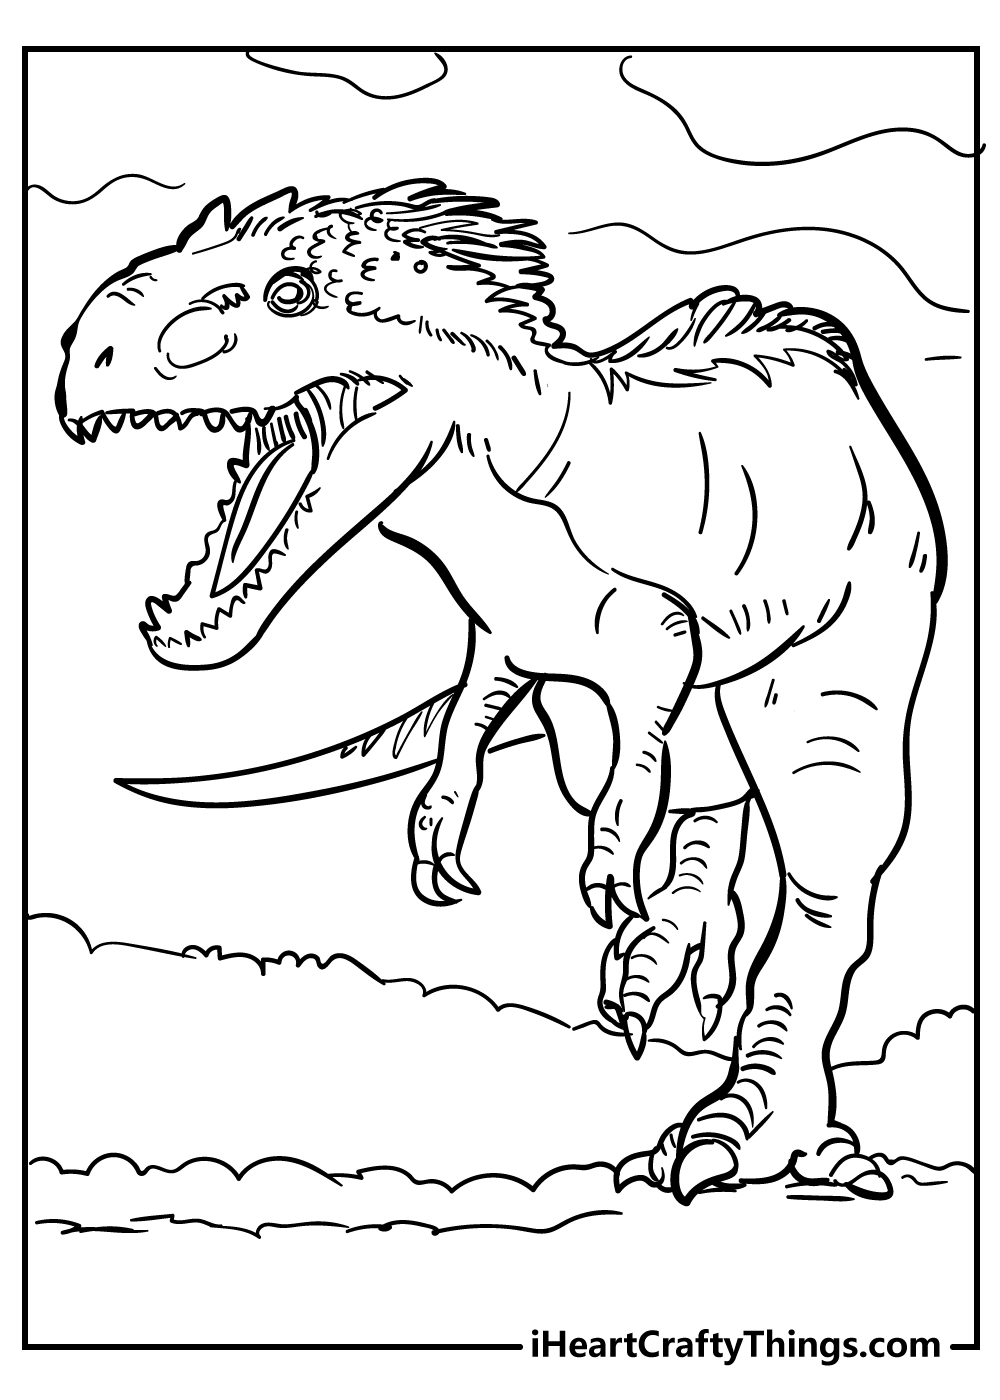 jurassic world t-rex coloring pages free printable